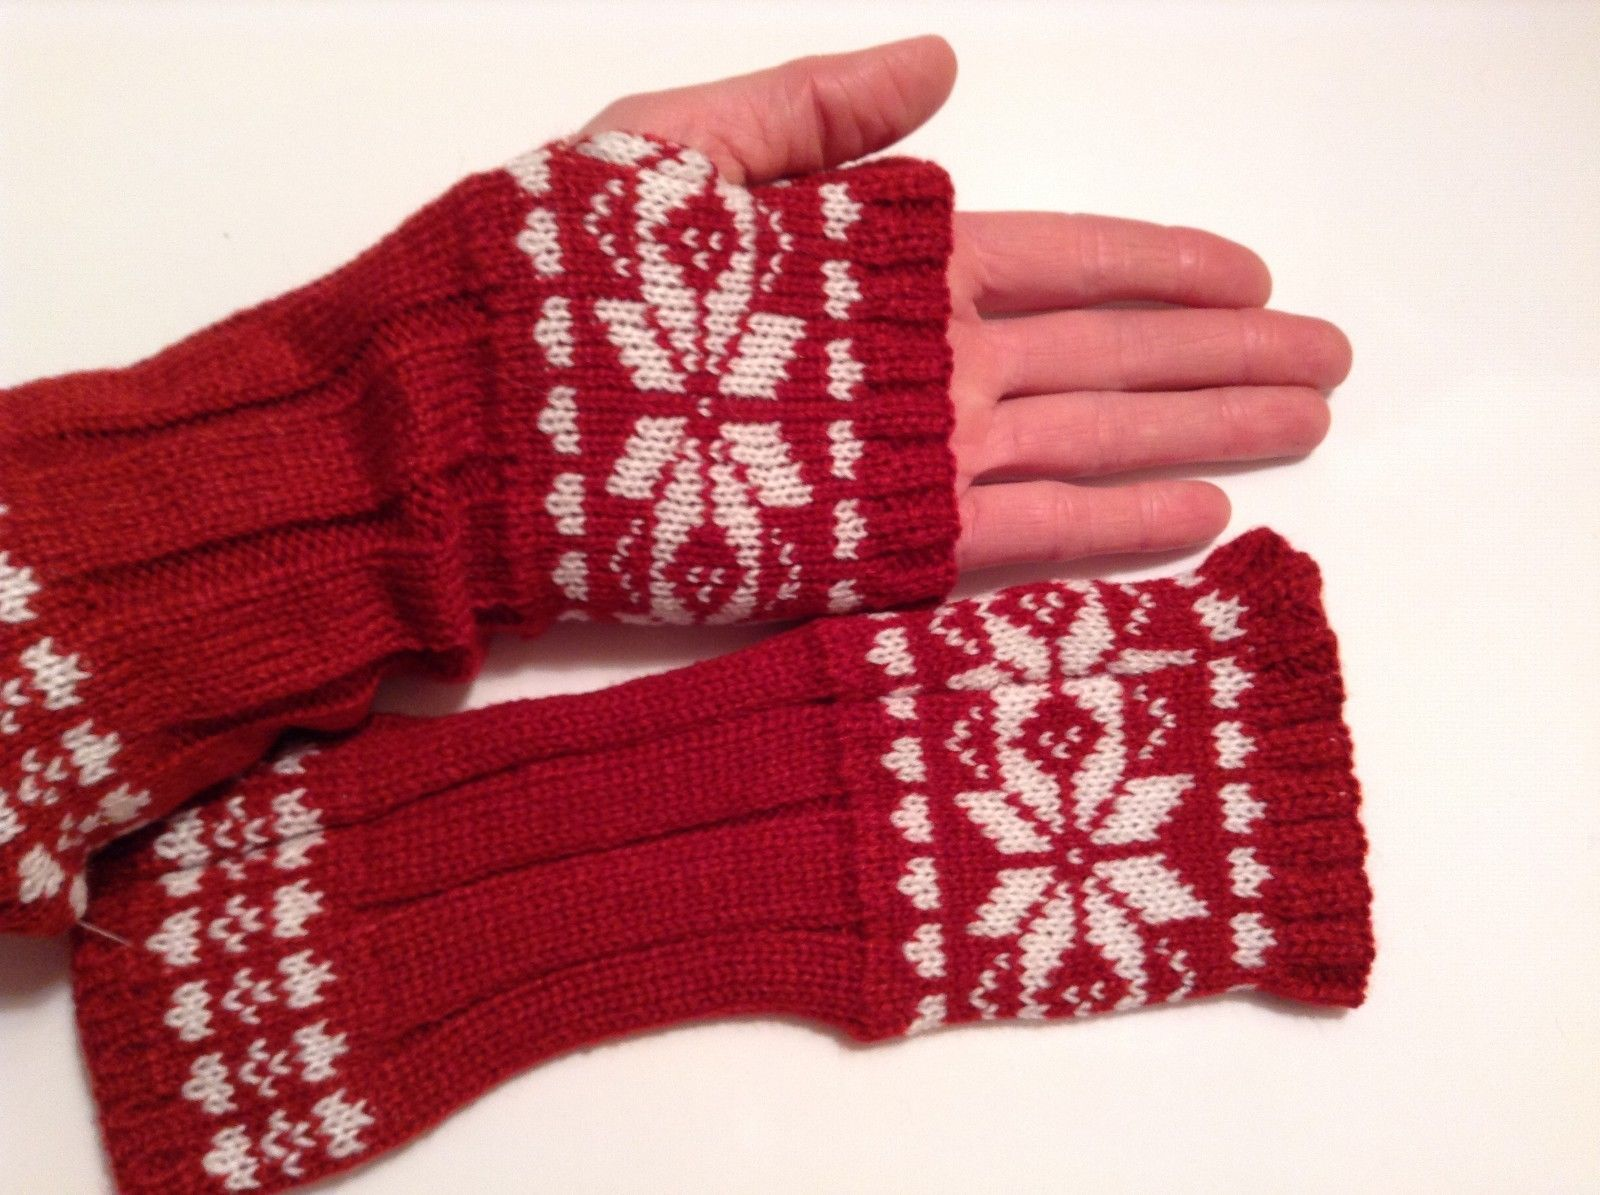 Fun Snowflake snow knit finger less gloves 6 color choices holiday gift Nordic